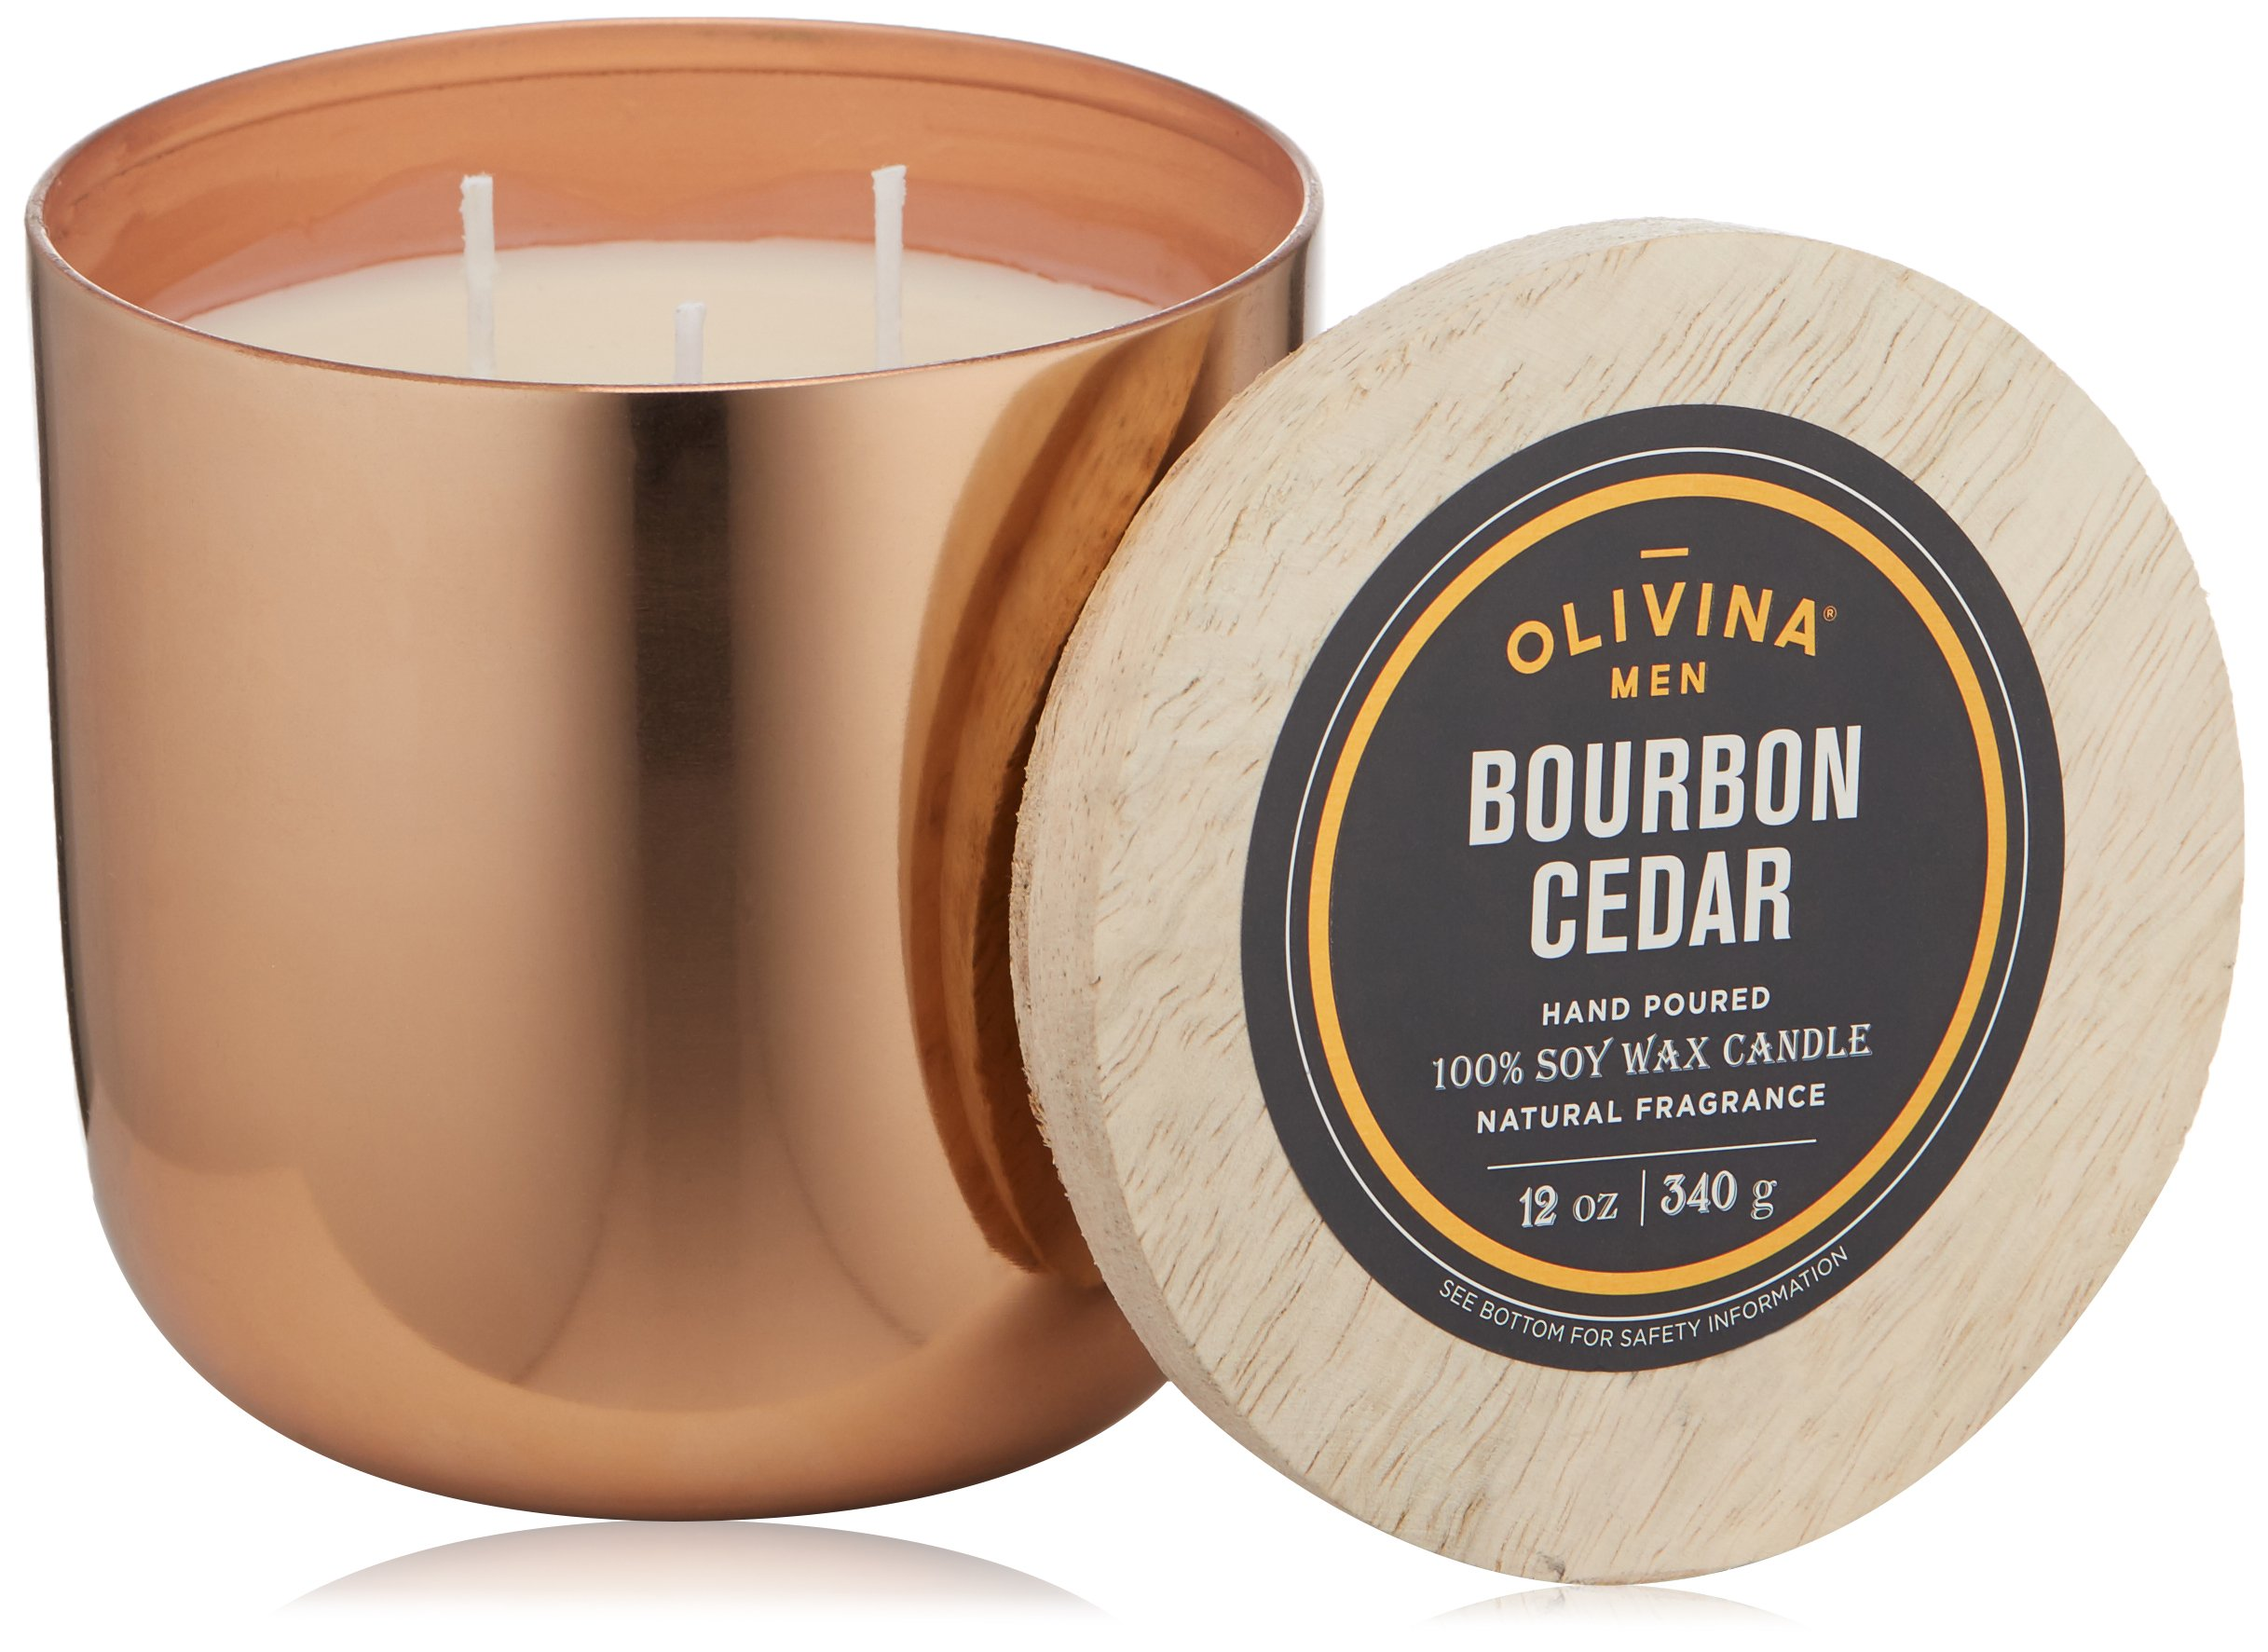 Olivina Men Soy Wax Candle Copper, Bourbon Cedar, 12 oz.